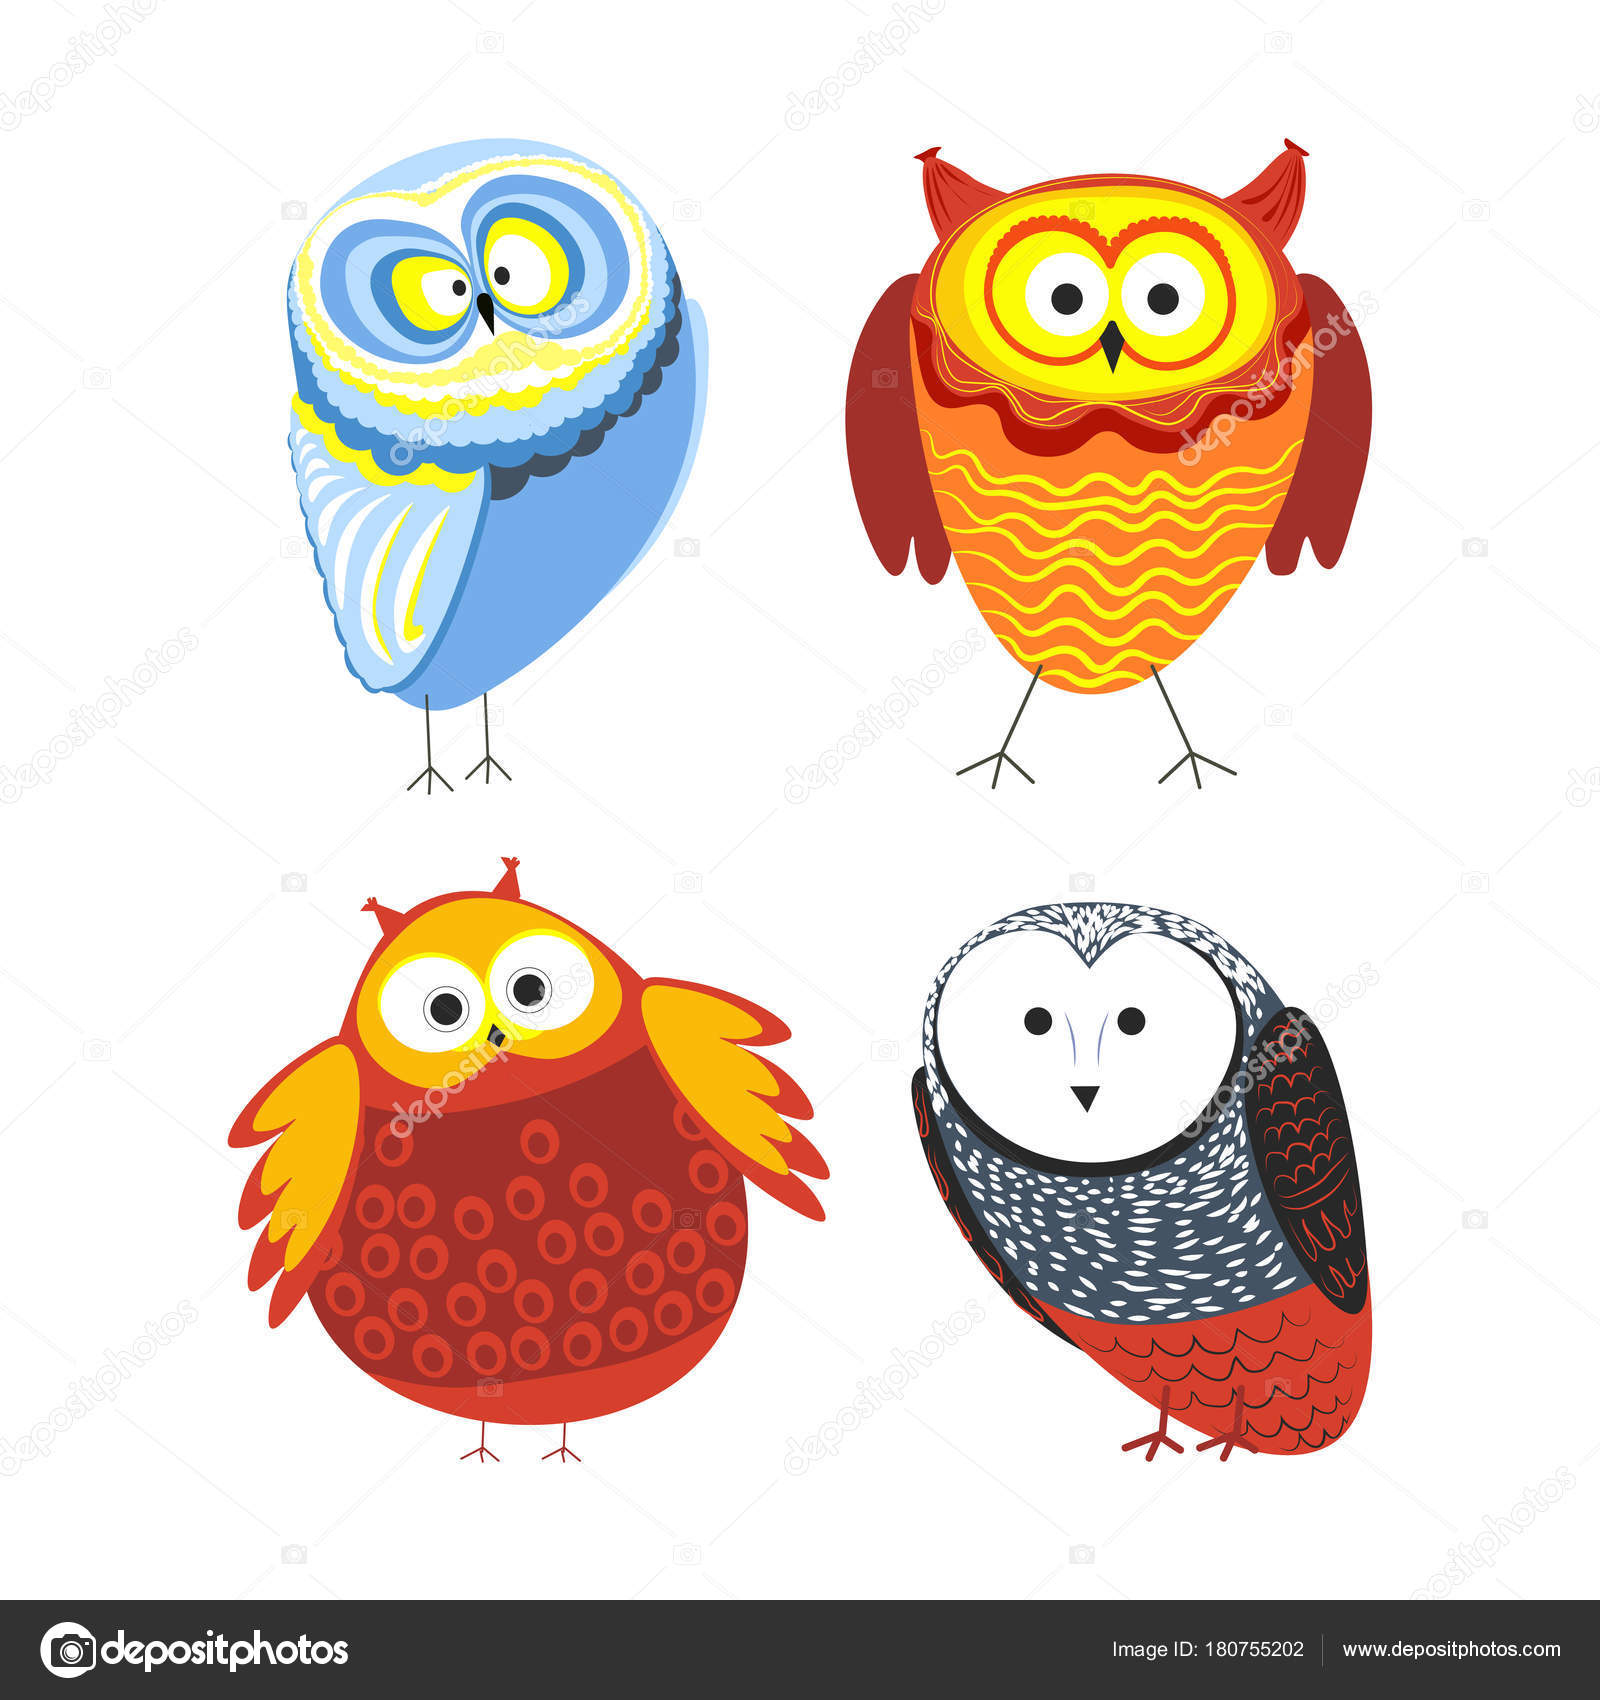 Owls Cartoon Kid Funny Characters Feather Ornament Vector Isolated Flat Stock Vector C Sonulkaster 180755202